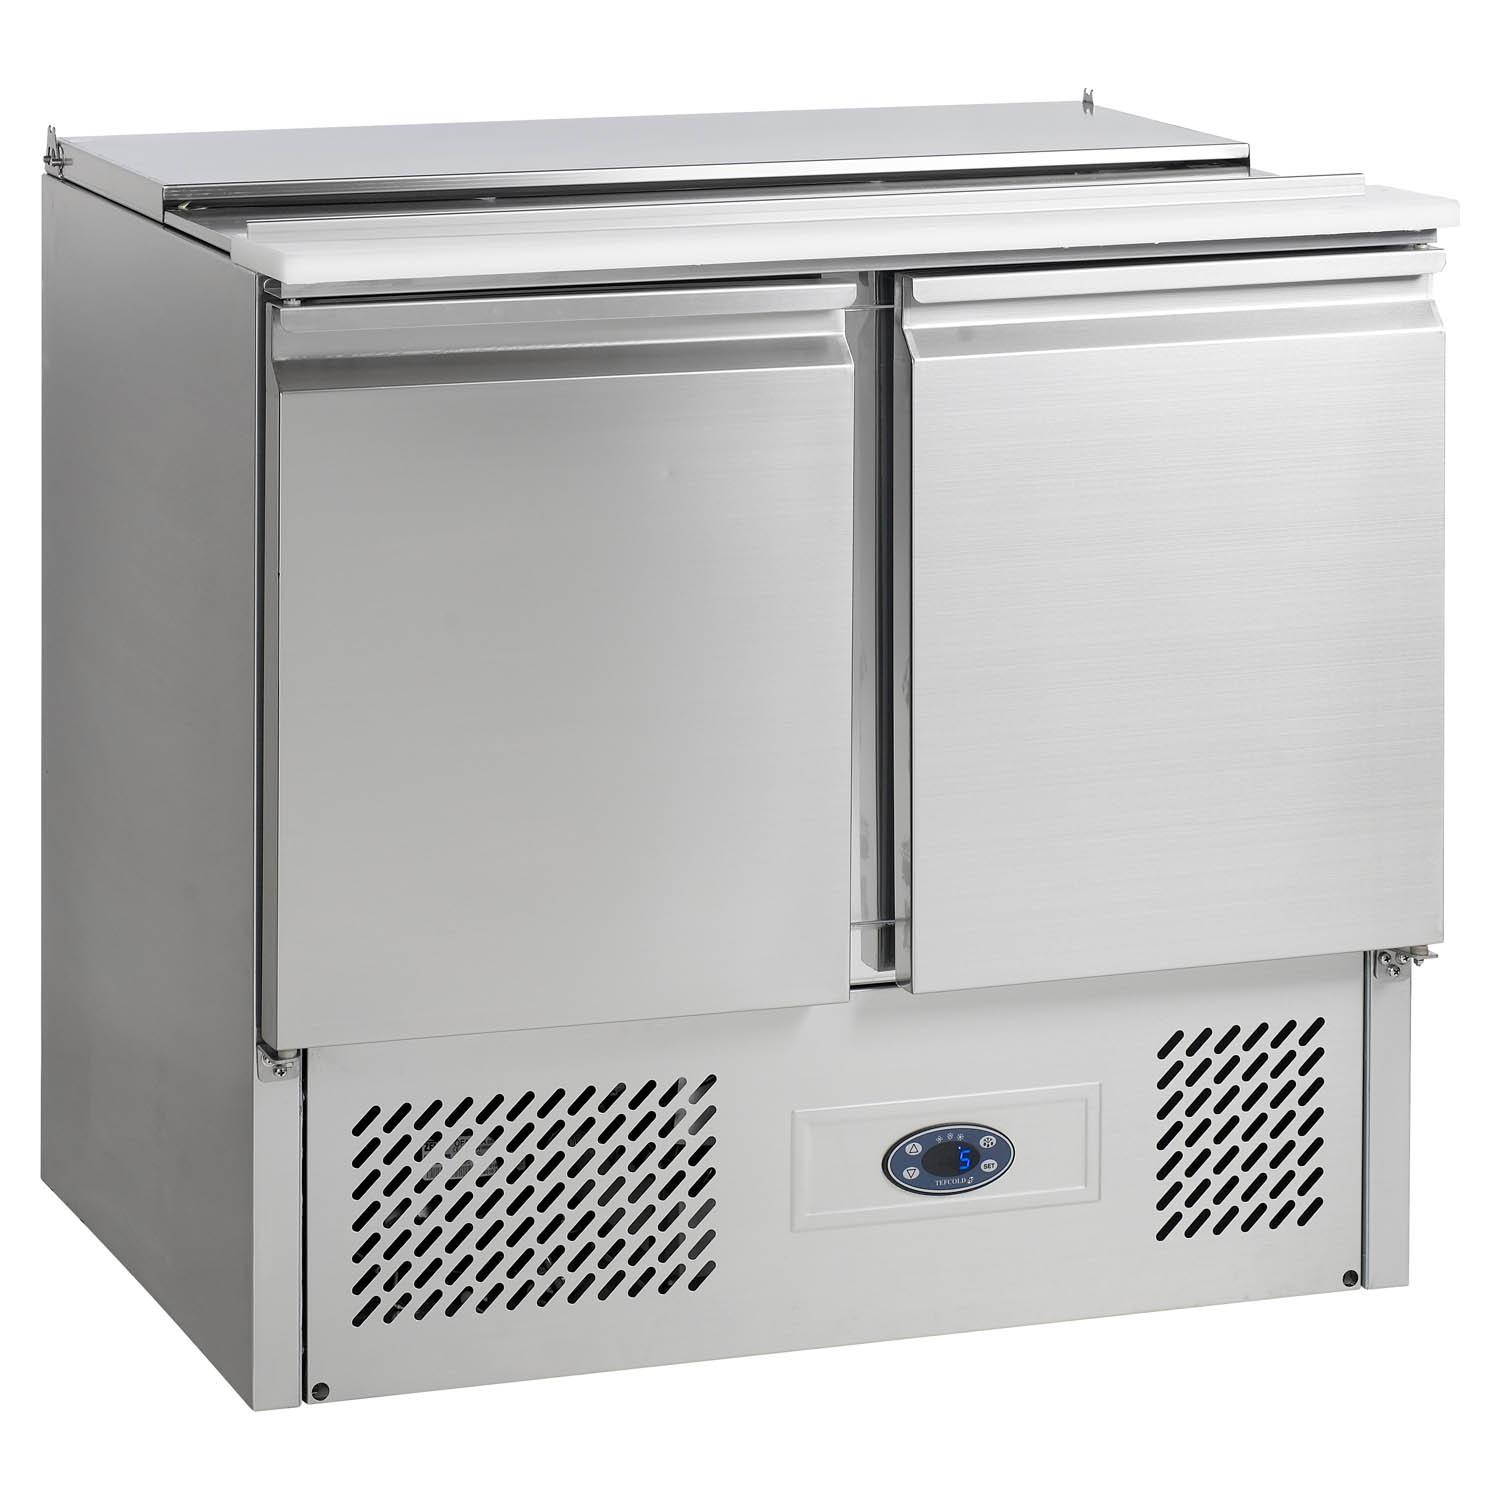 Tefcold SA920B Gastronorm Stainless Steel Saladette Counter 2-Door Chiller closed